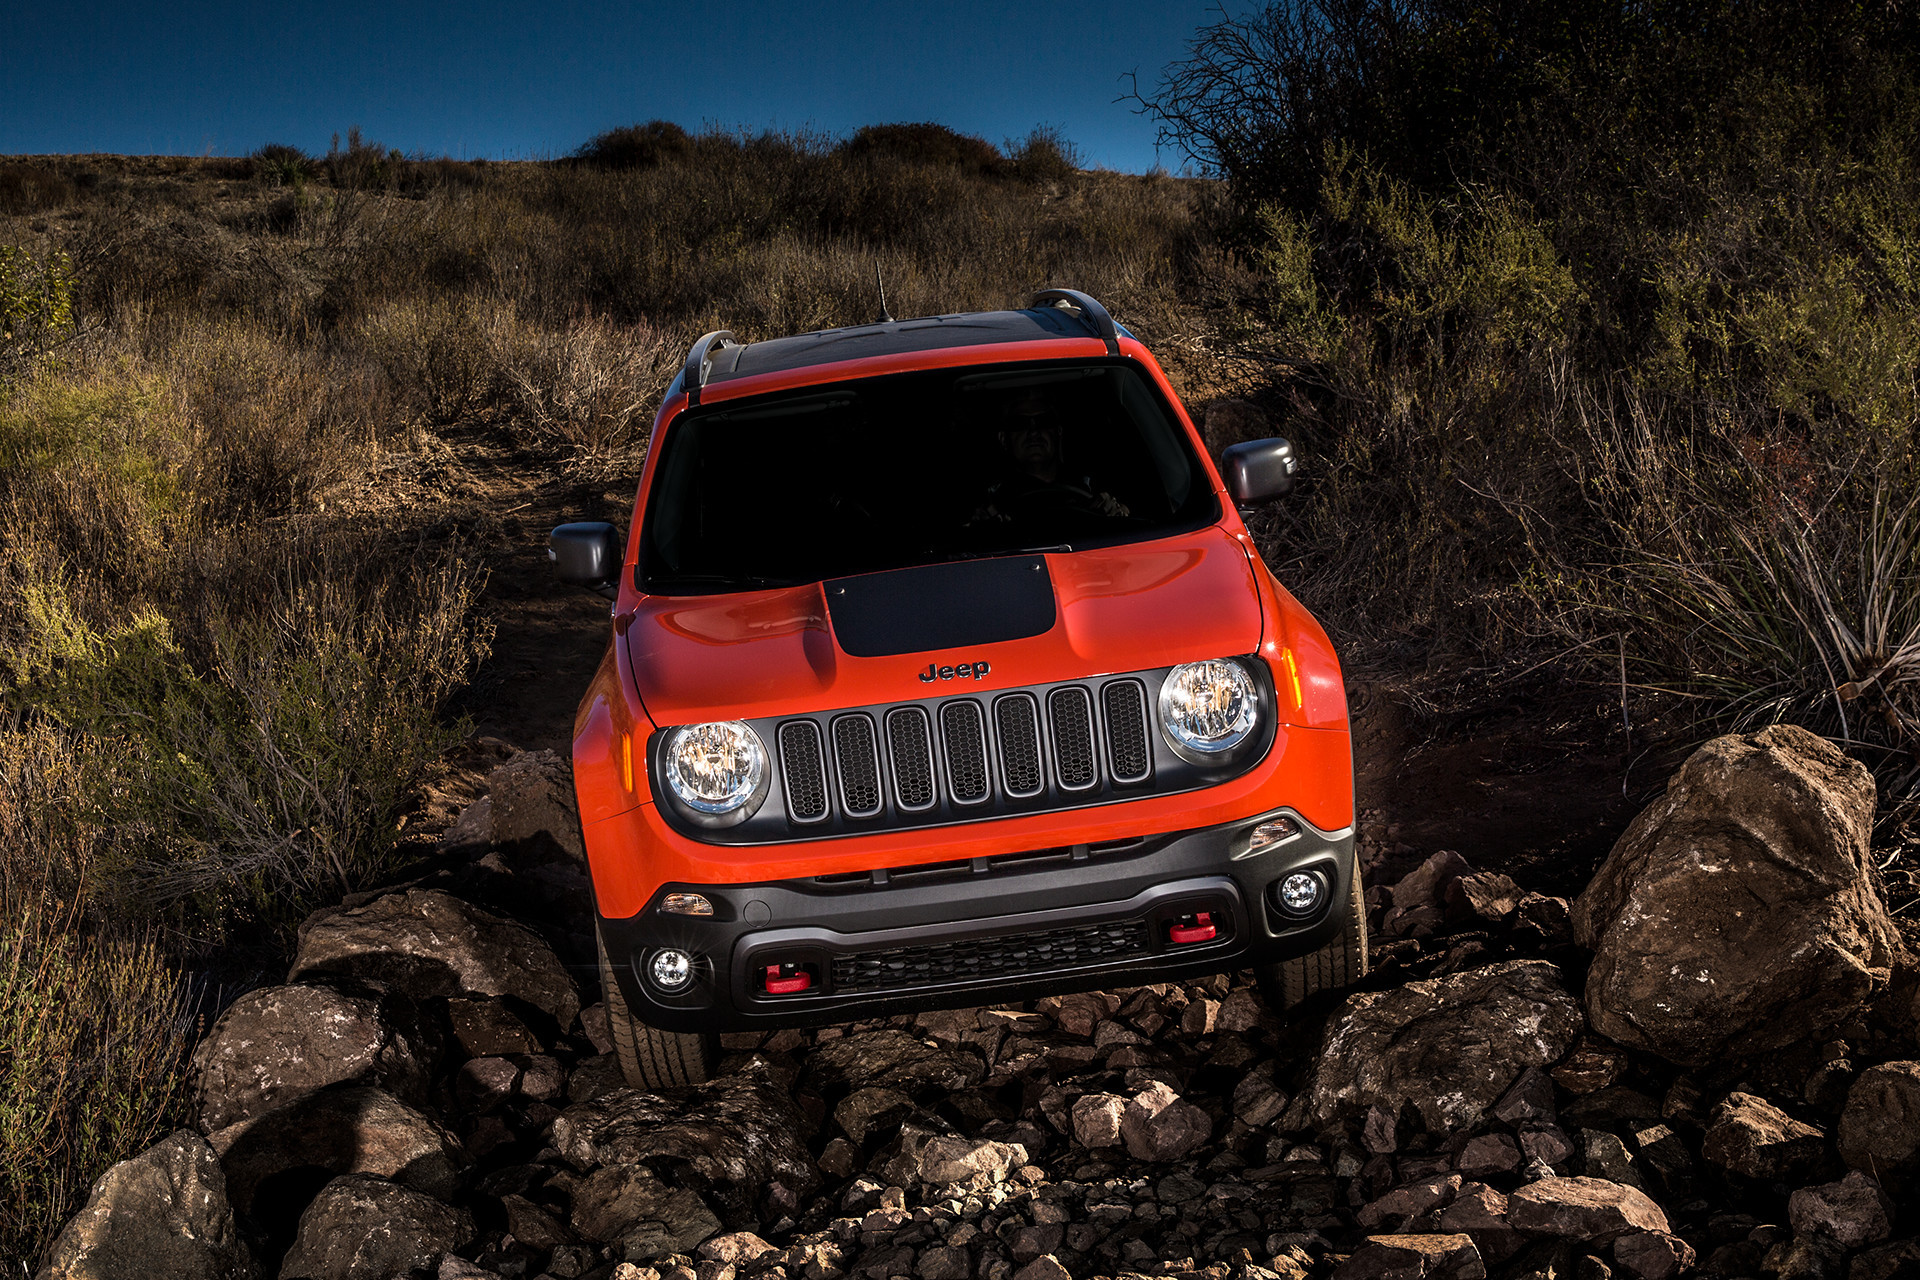 2018 Jeep Renegade Selec-Terrain Traction Management